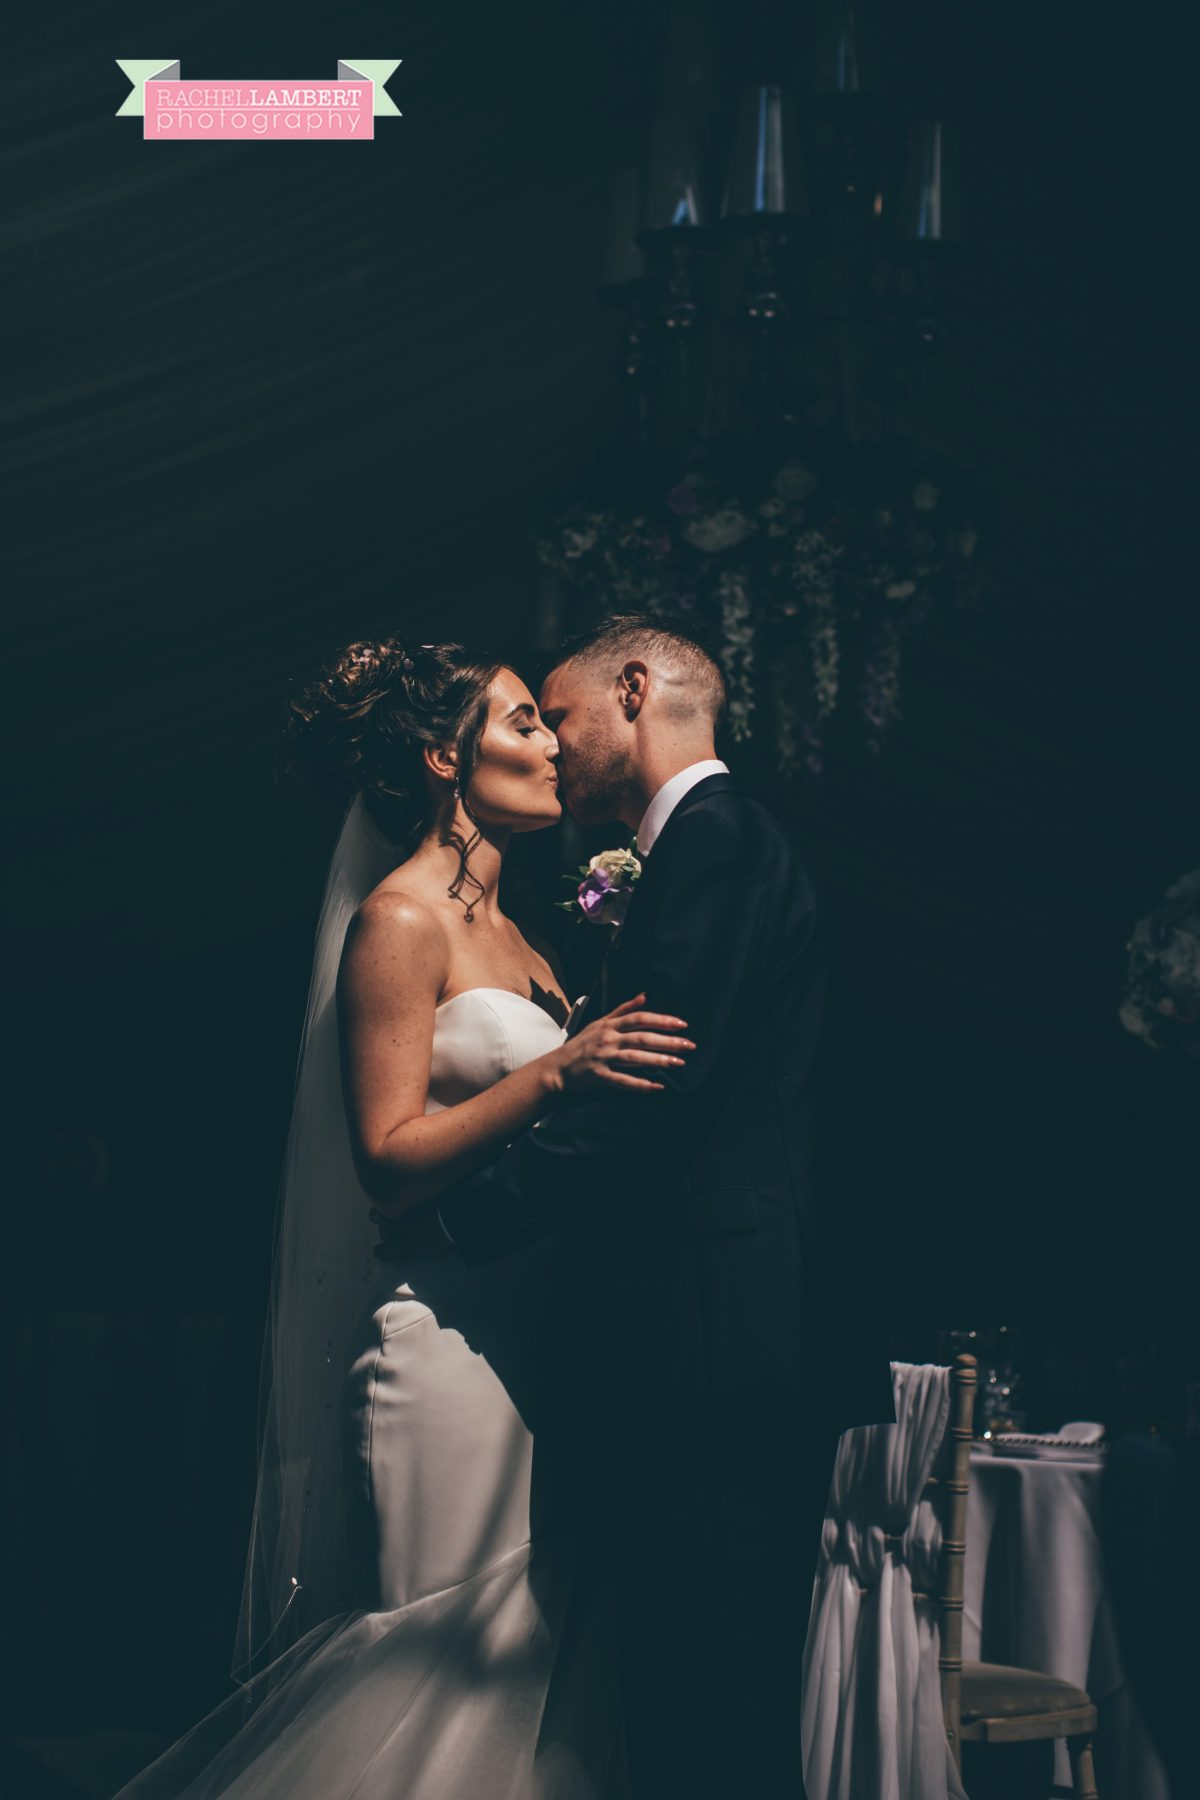 olwalls wedding photographer rachel lambert photography bride and groom